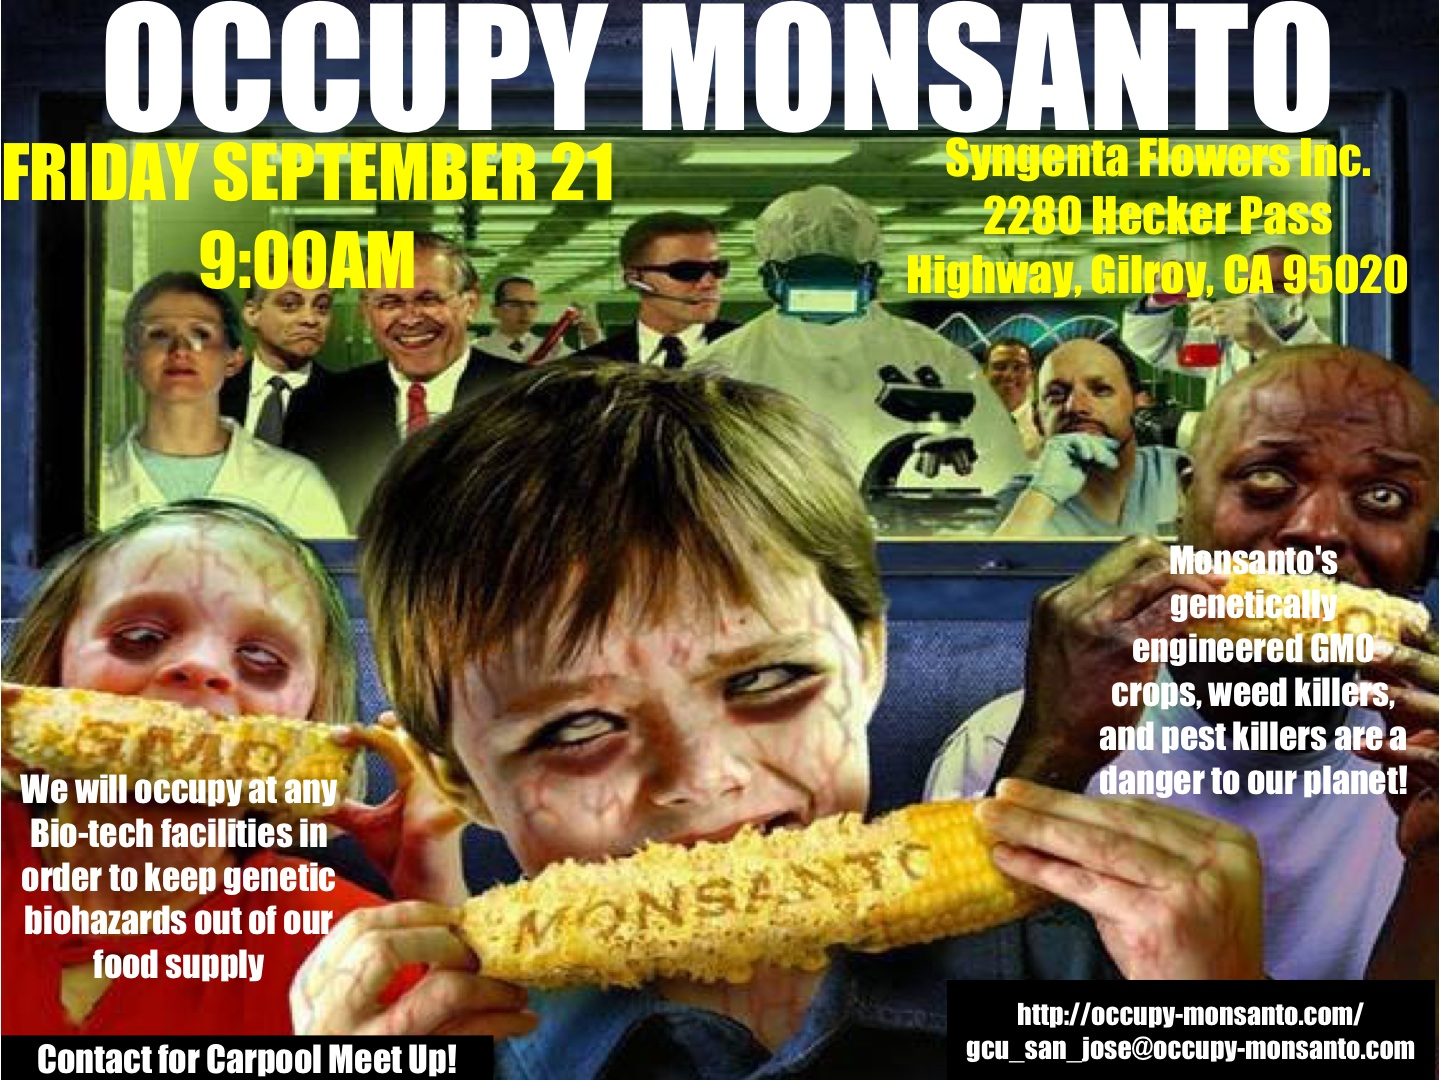 OccupyMonsantoFlier Gilroy Gilroy Dispatch: Protest planned  seeds in dispute  Weed Killer Toby Nixon the California Farm Bureau Syngenta Flowers Inc Syngenta Corporate Affairs Syngenta Steve Costa Smucker Randy Armstrong Proposition 37 Prop 37. Pepsico obesity North America Nestle Monsanto Lori Schwind Kraft Kellogg Jennifer Scheer Hershey GMO Flowers gmo Gilroy Dispatch Gilroy food based allergies FDA Evil Biotech ConAgra Foods Coca Cola California Retailers Association California Chamber of Commerce California CA Bayer Bar Area autism Agent Orange 